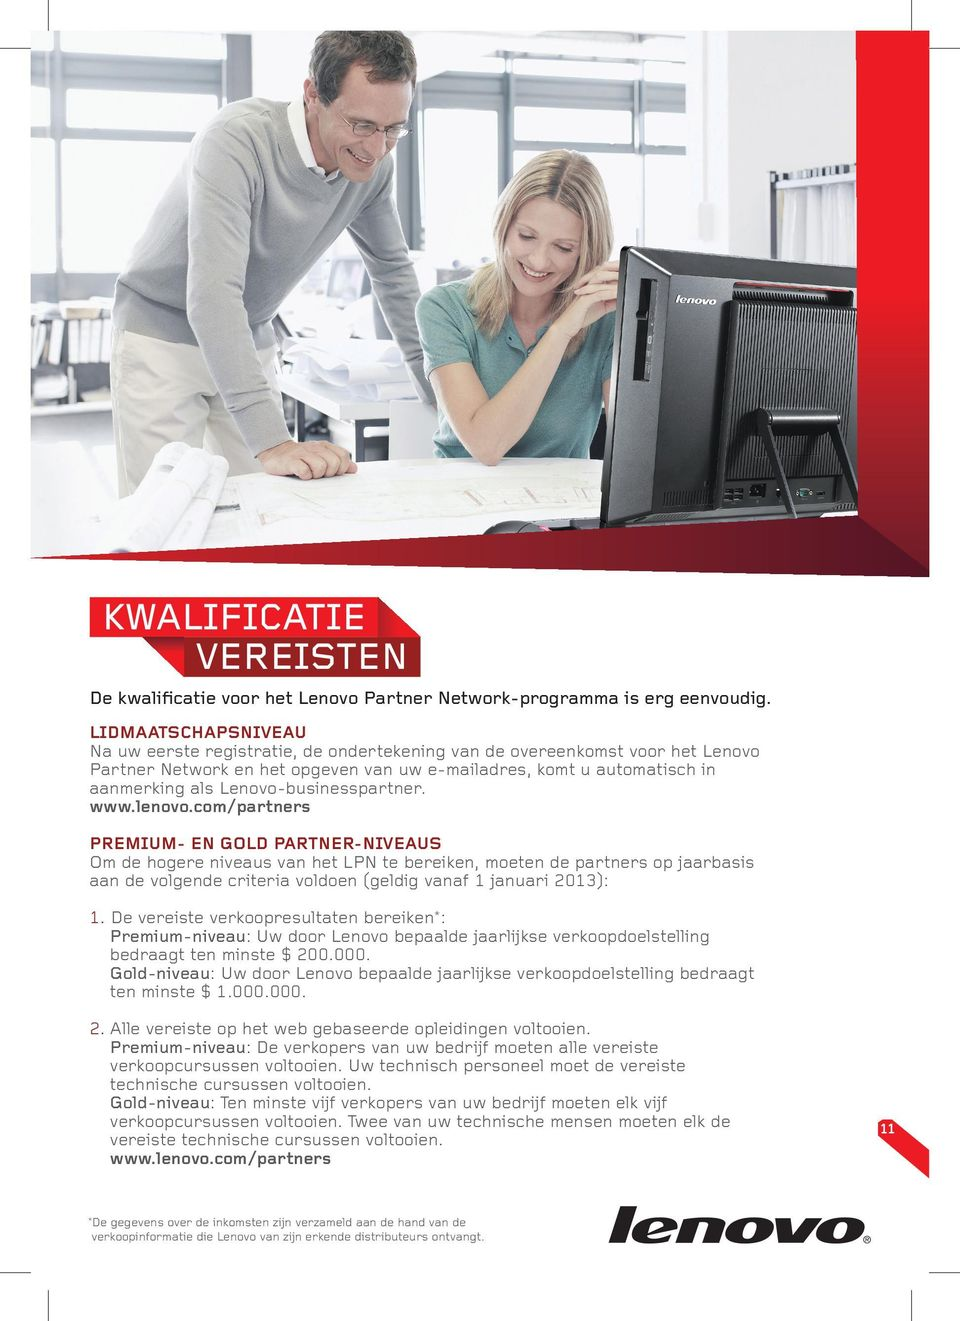 Lenovo-businesspartner.